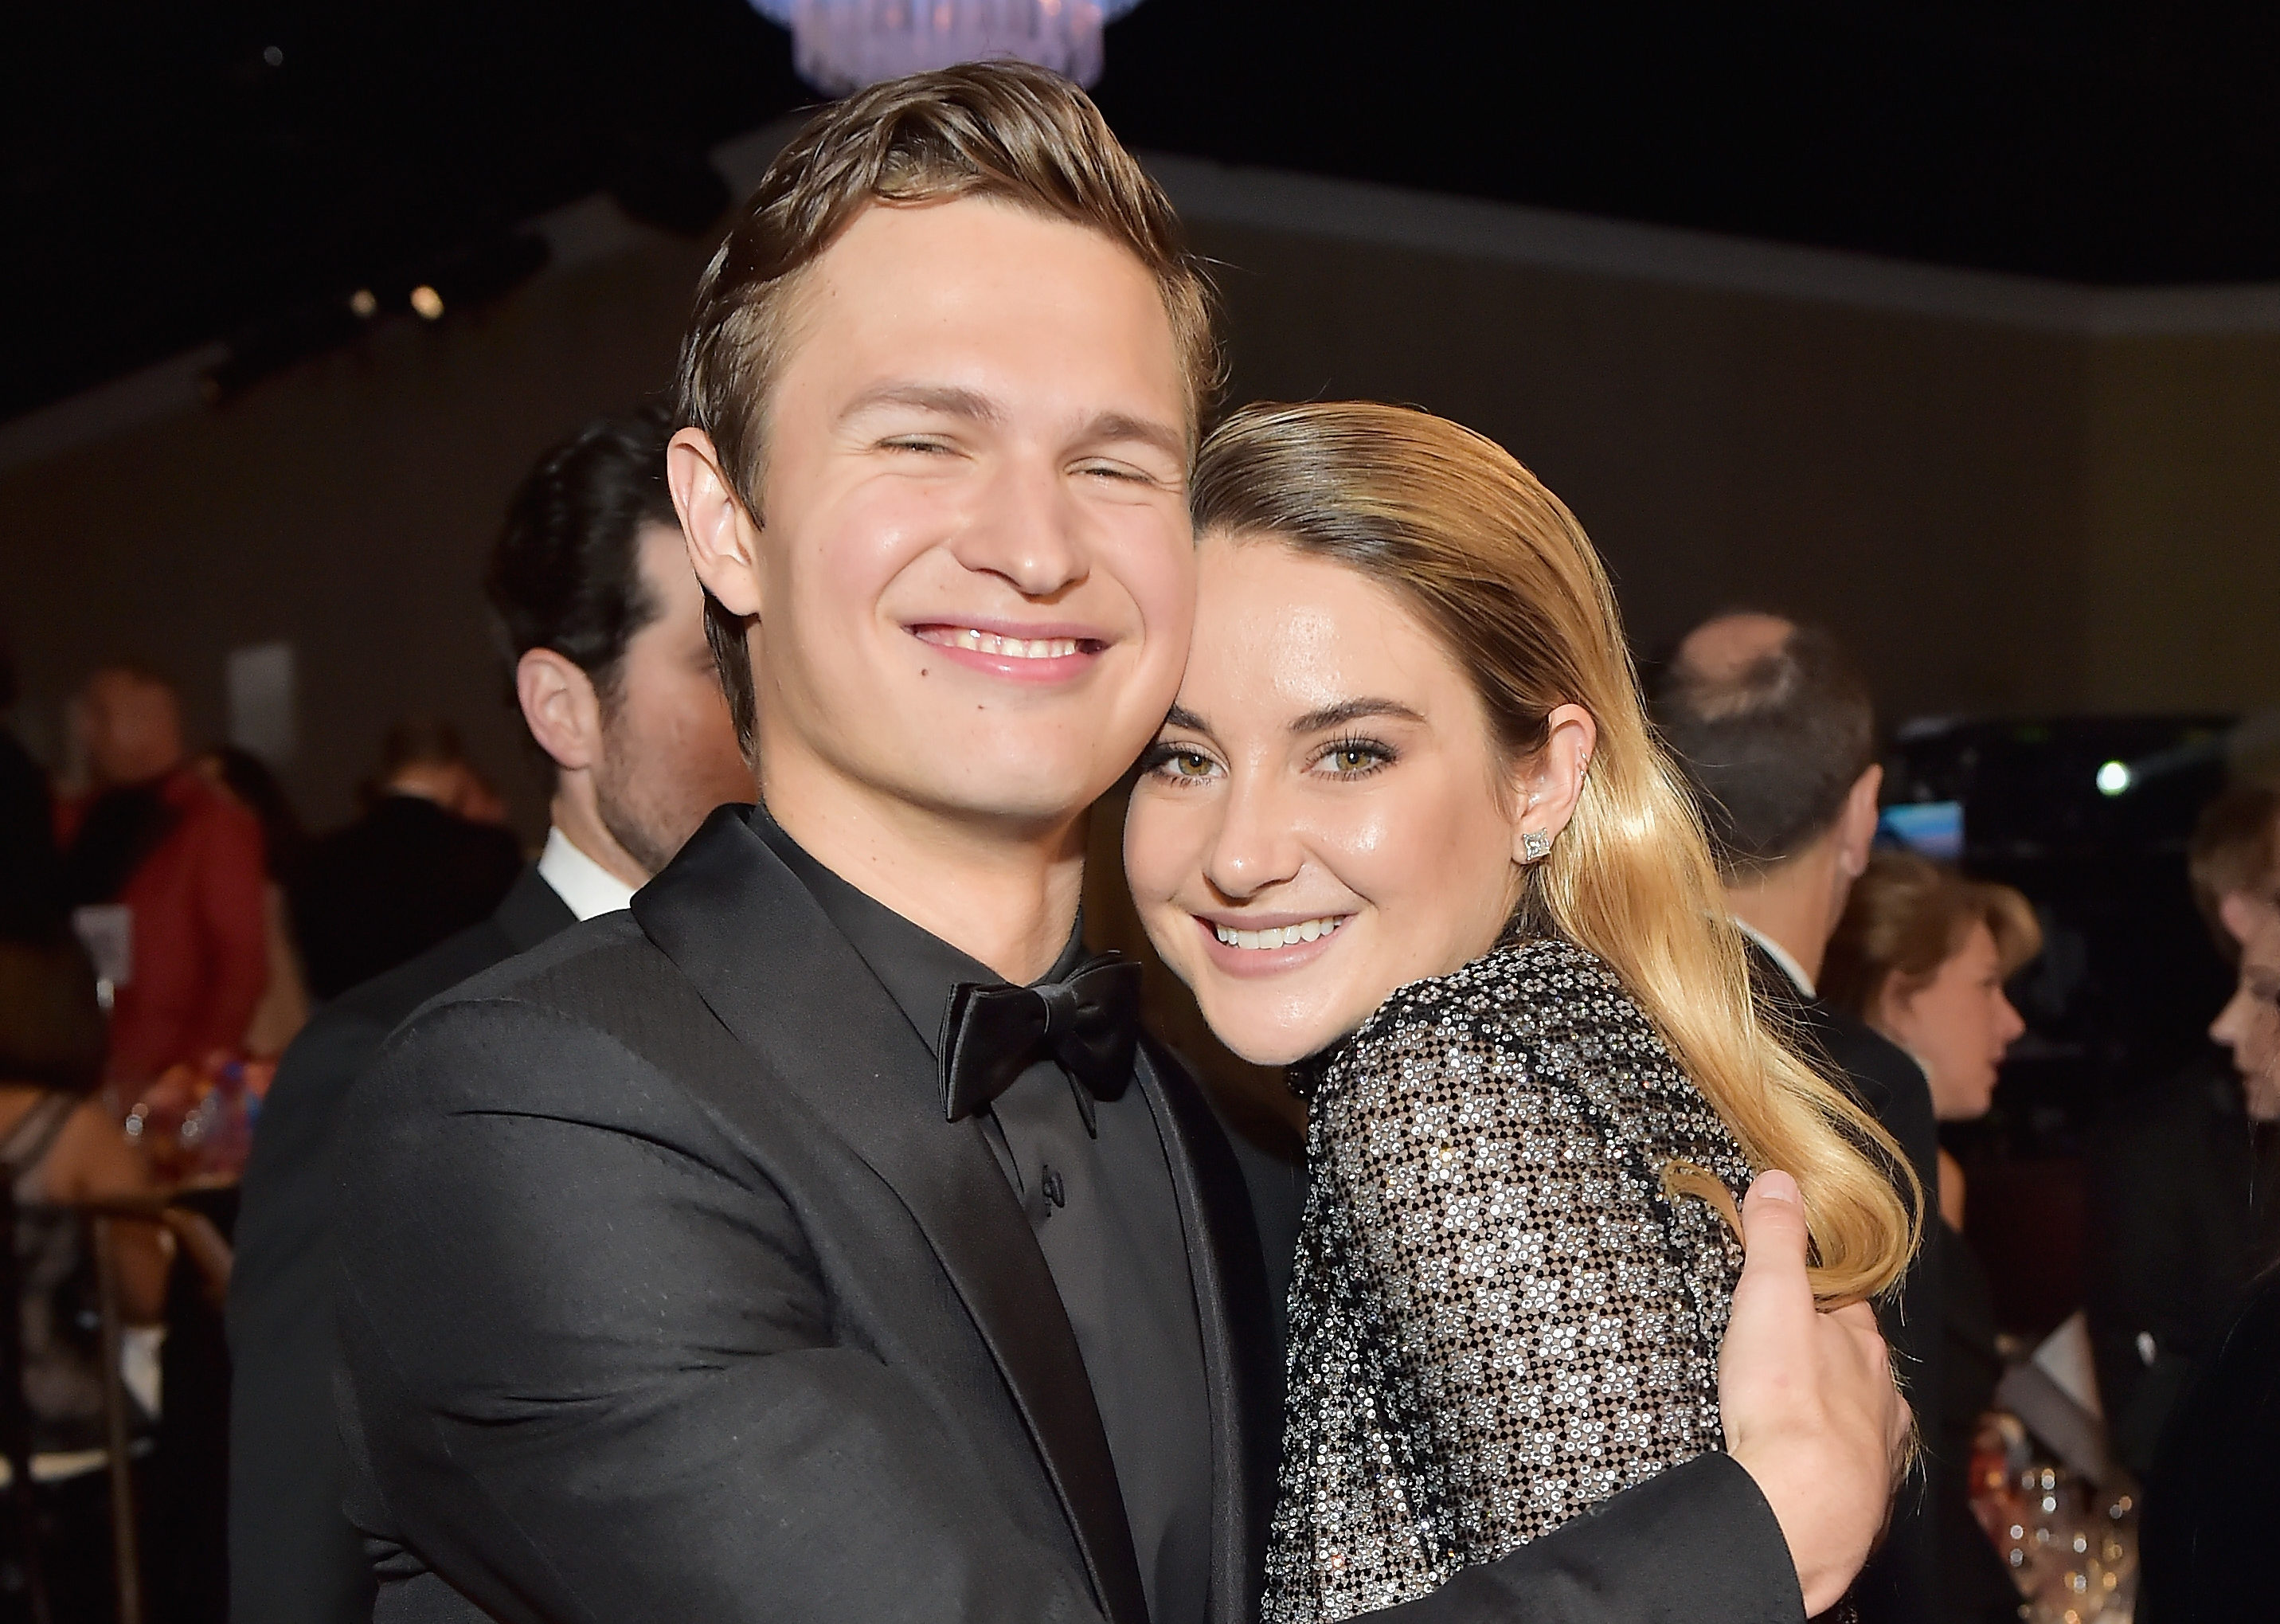 Ansel Elgort and Shailene Woodley had a perfect and cry-worthy reunion at the 2018 Golden Globes